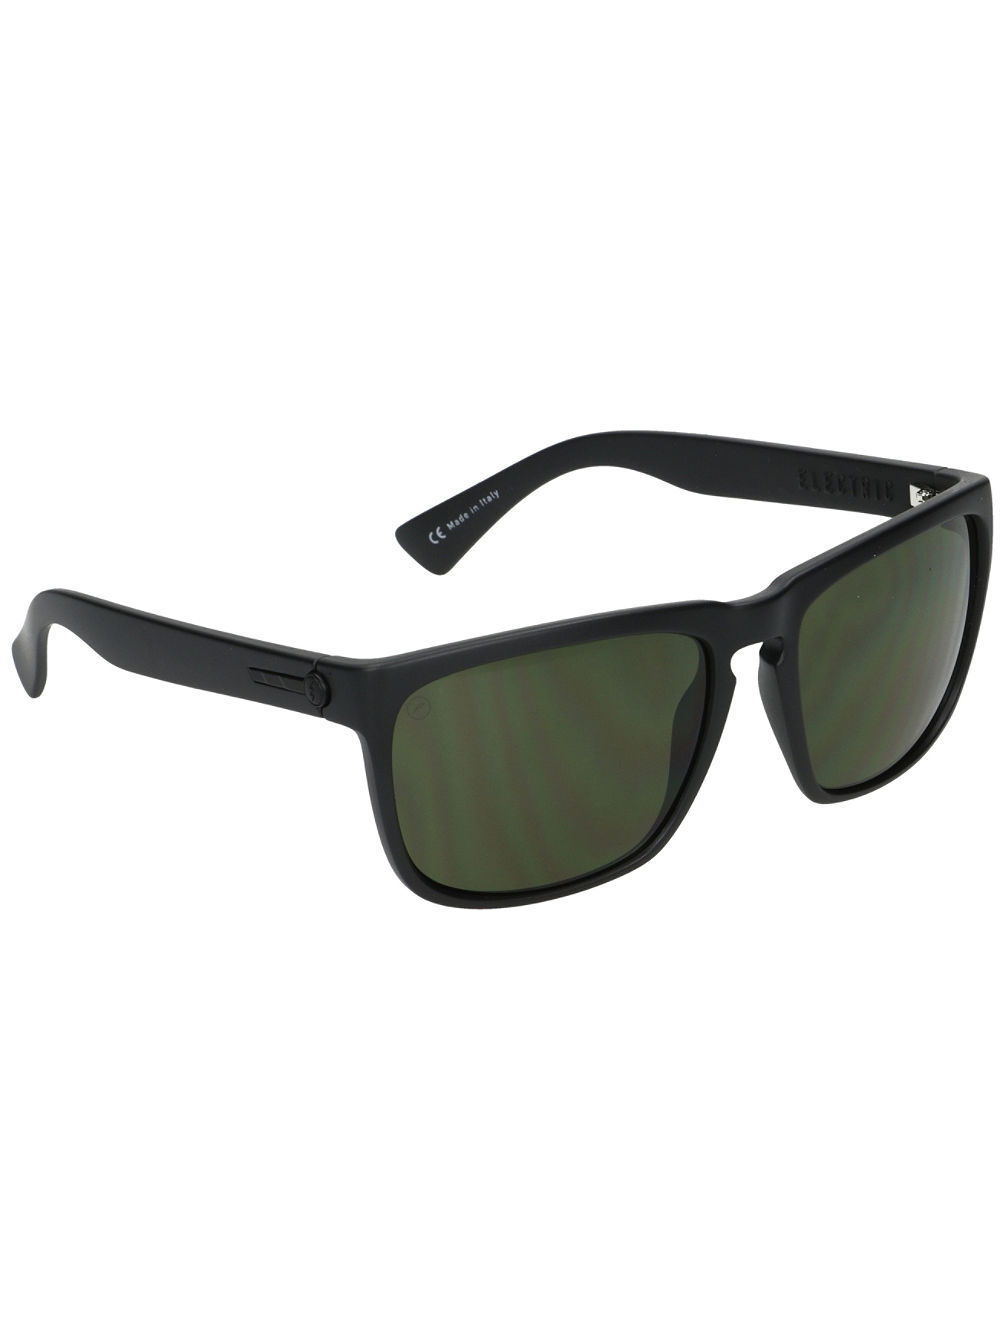 Knoxville XL Matte Black Sonnenbrille